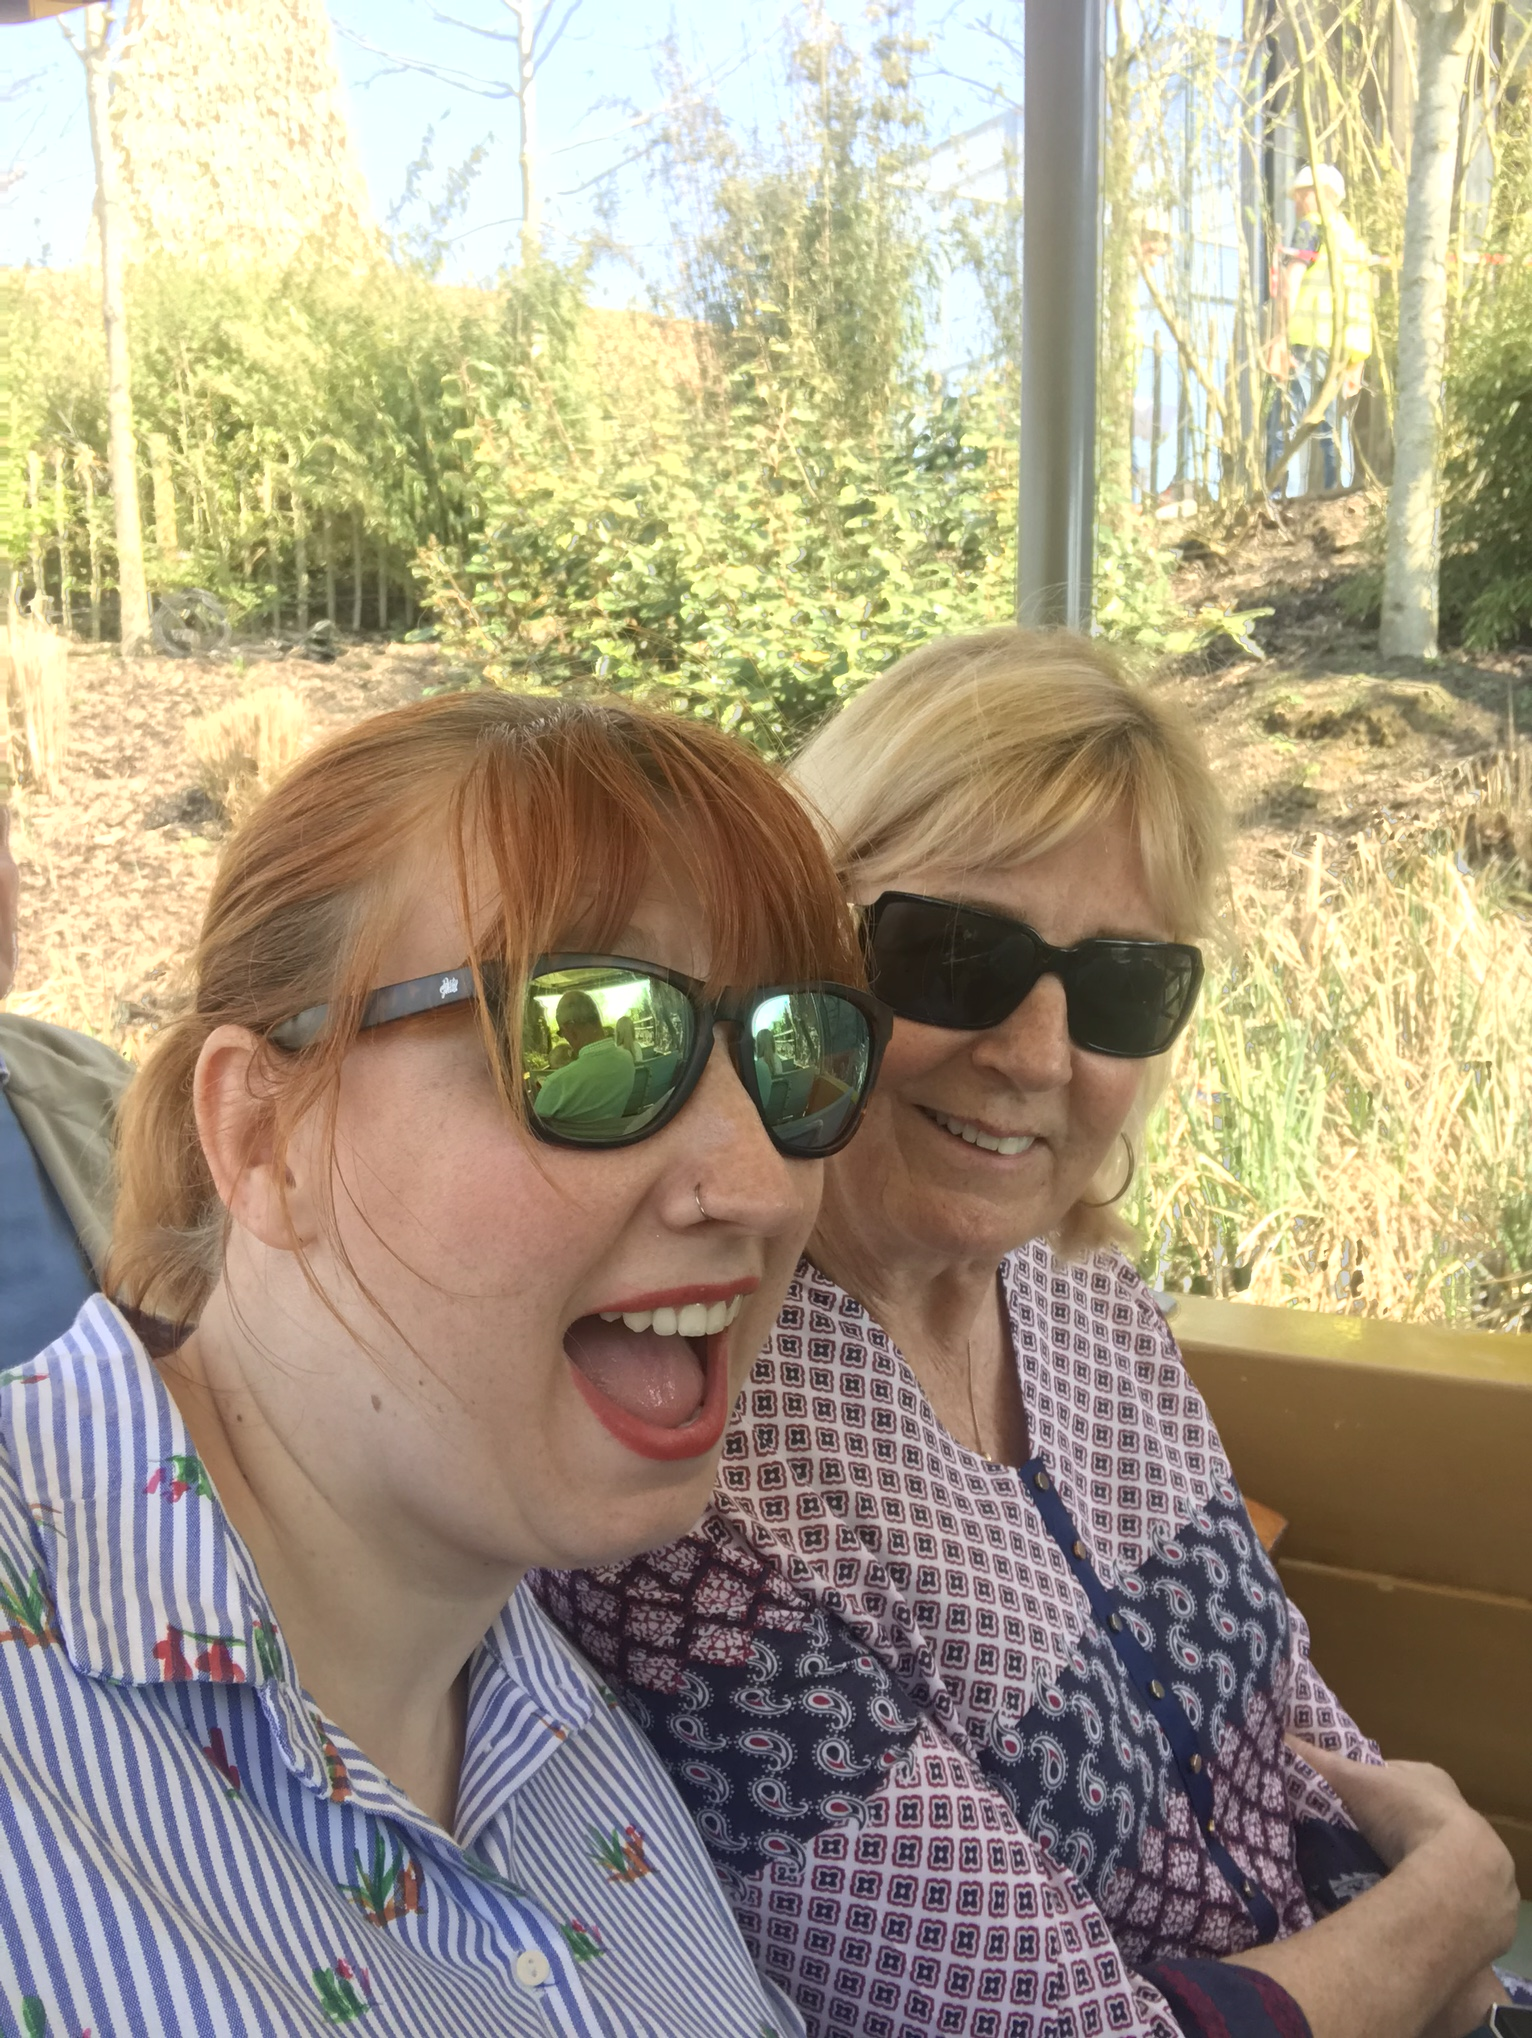 me and mum at the zoo